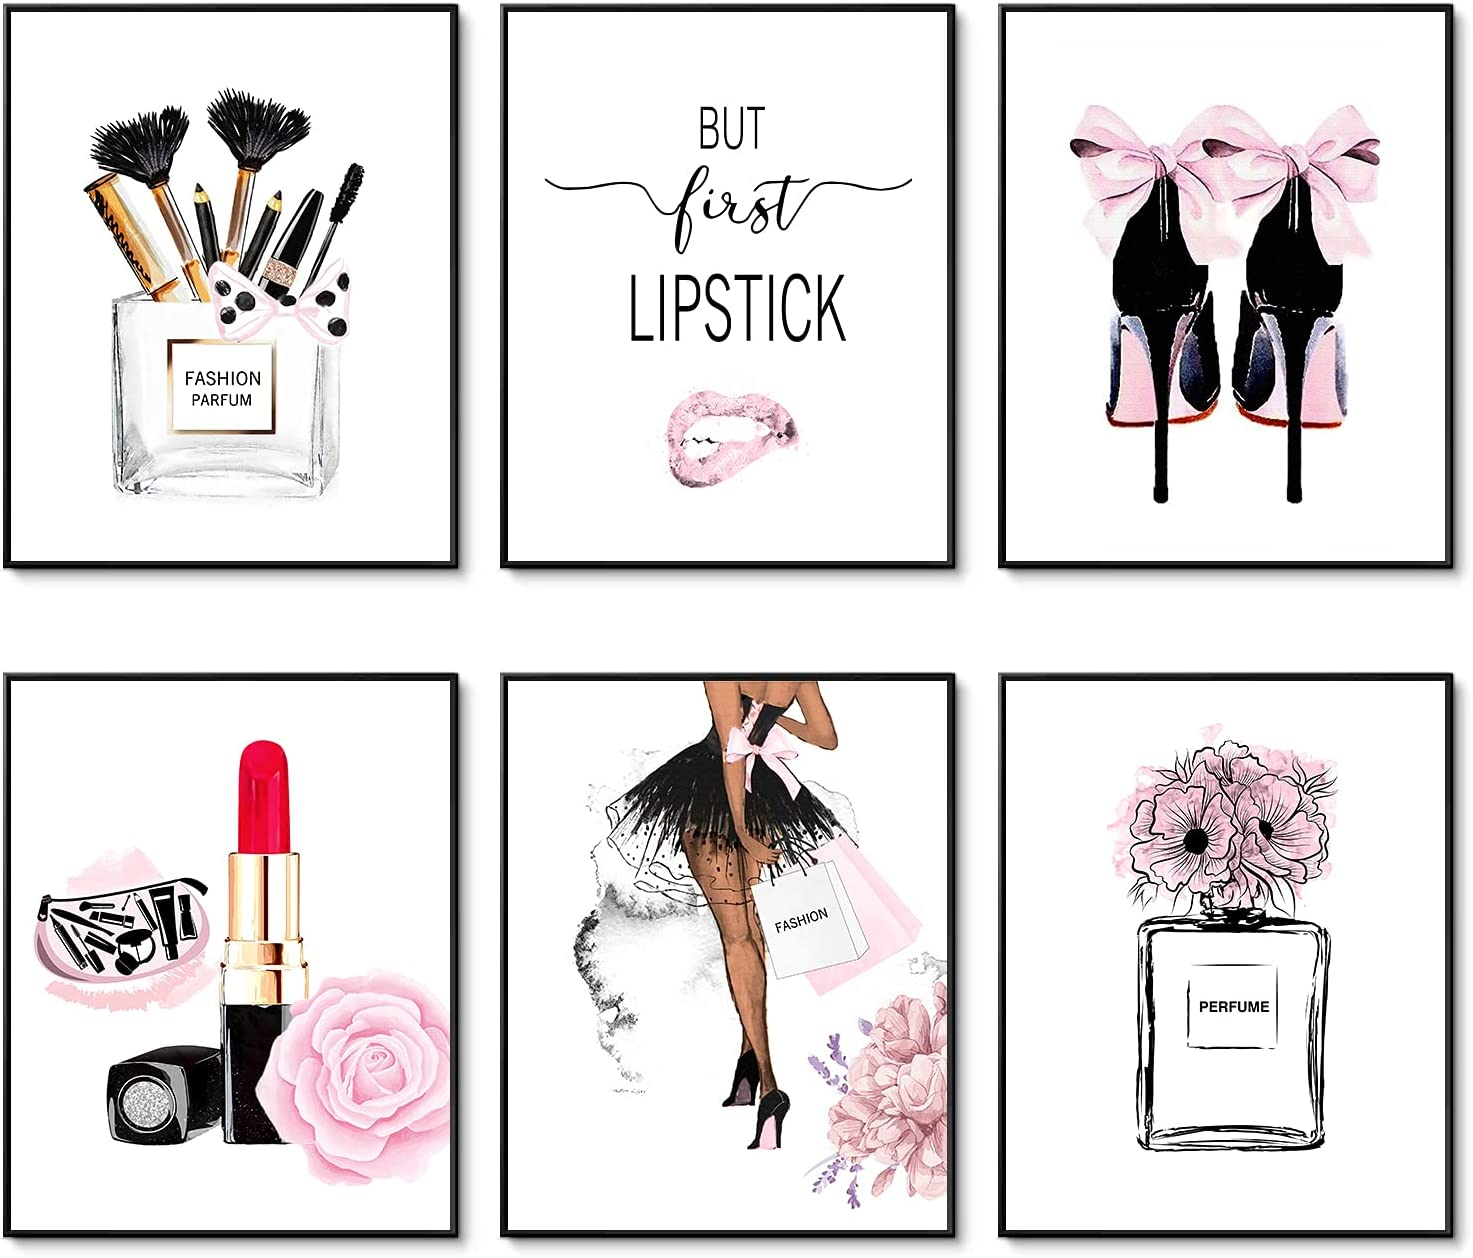 Fashion Wall Art Prints Set of 6 Pink Room Decor Pictures Wall Decor Canvas Art Posters Perfume Lipstick Makeup Wall Decor Artwork Girls Room Pictures for Bedroom (8